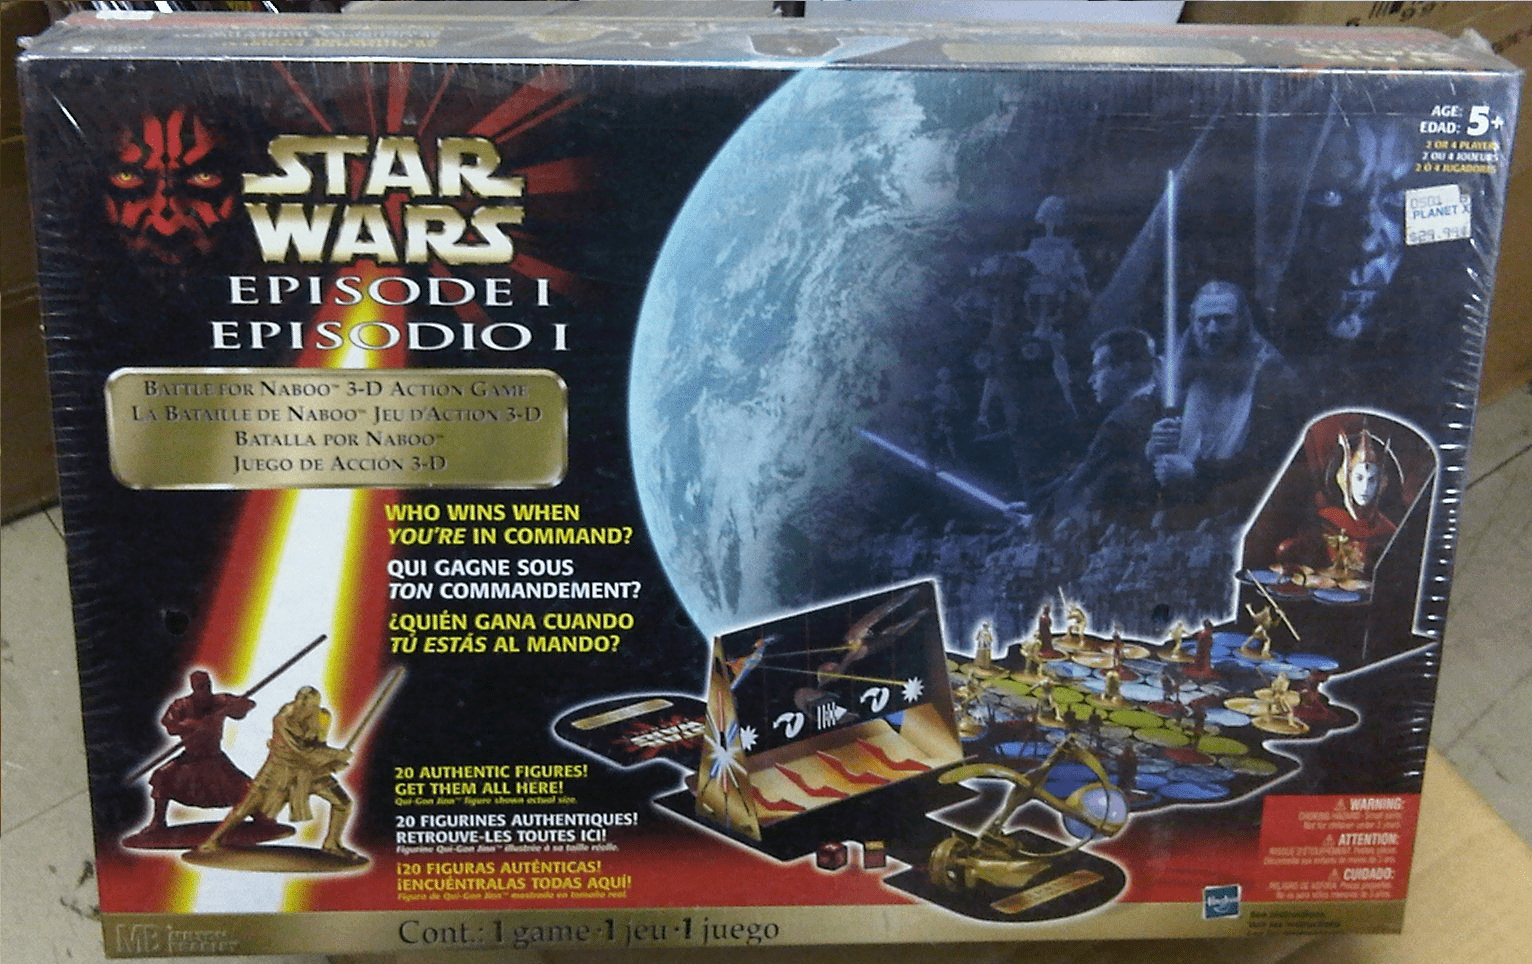 Hasbro Star Wars Episode 1 Battle for Naboo 3D Action Board Game